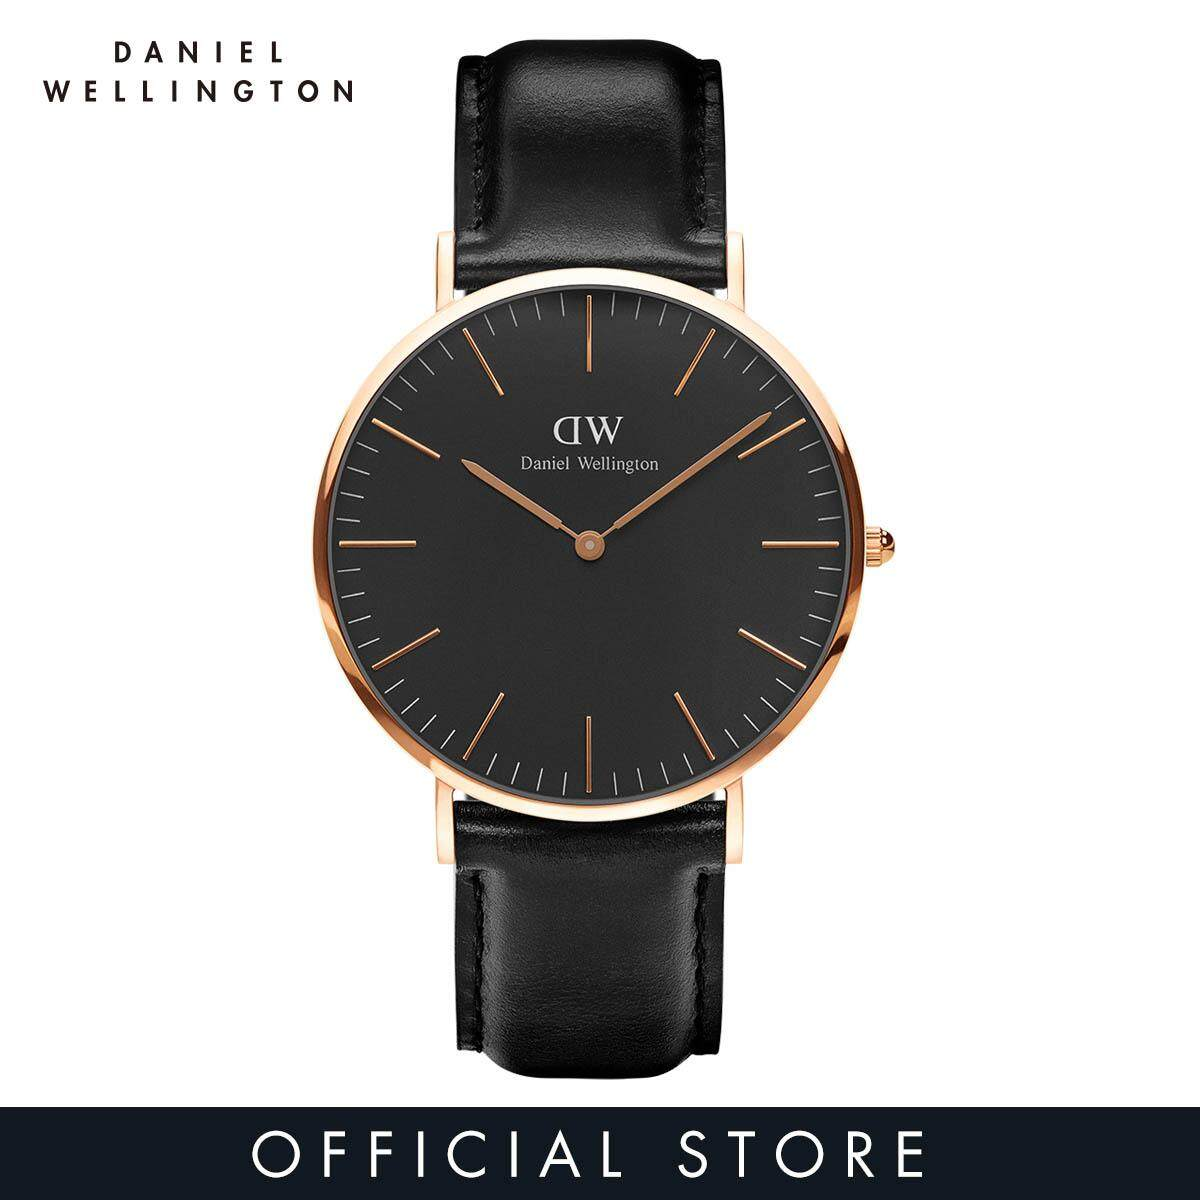 Daniel Wellington Classic Black Sheffield 40mm Black Dial on Rose Gold with Black Leather Strap - DW Watch for Men - Jam tangan lelaki Malaysia